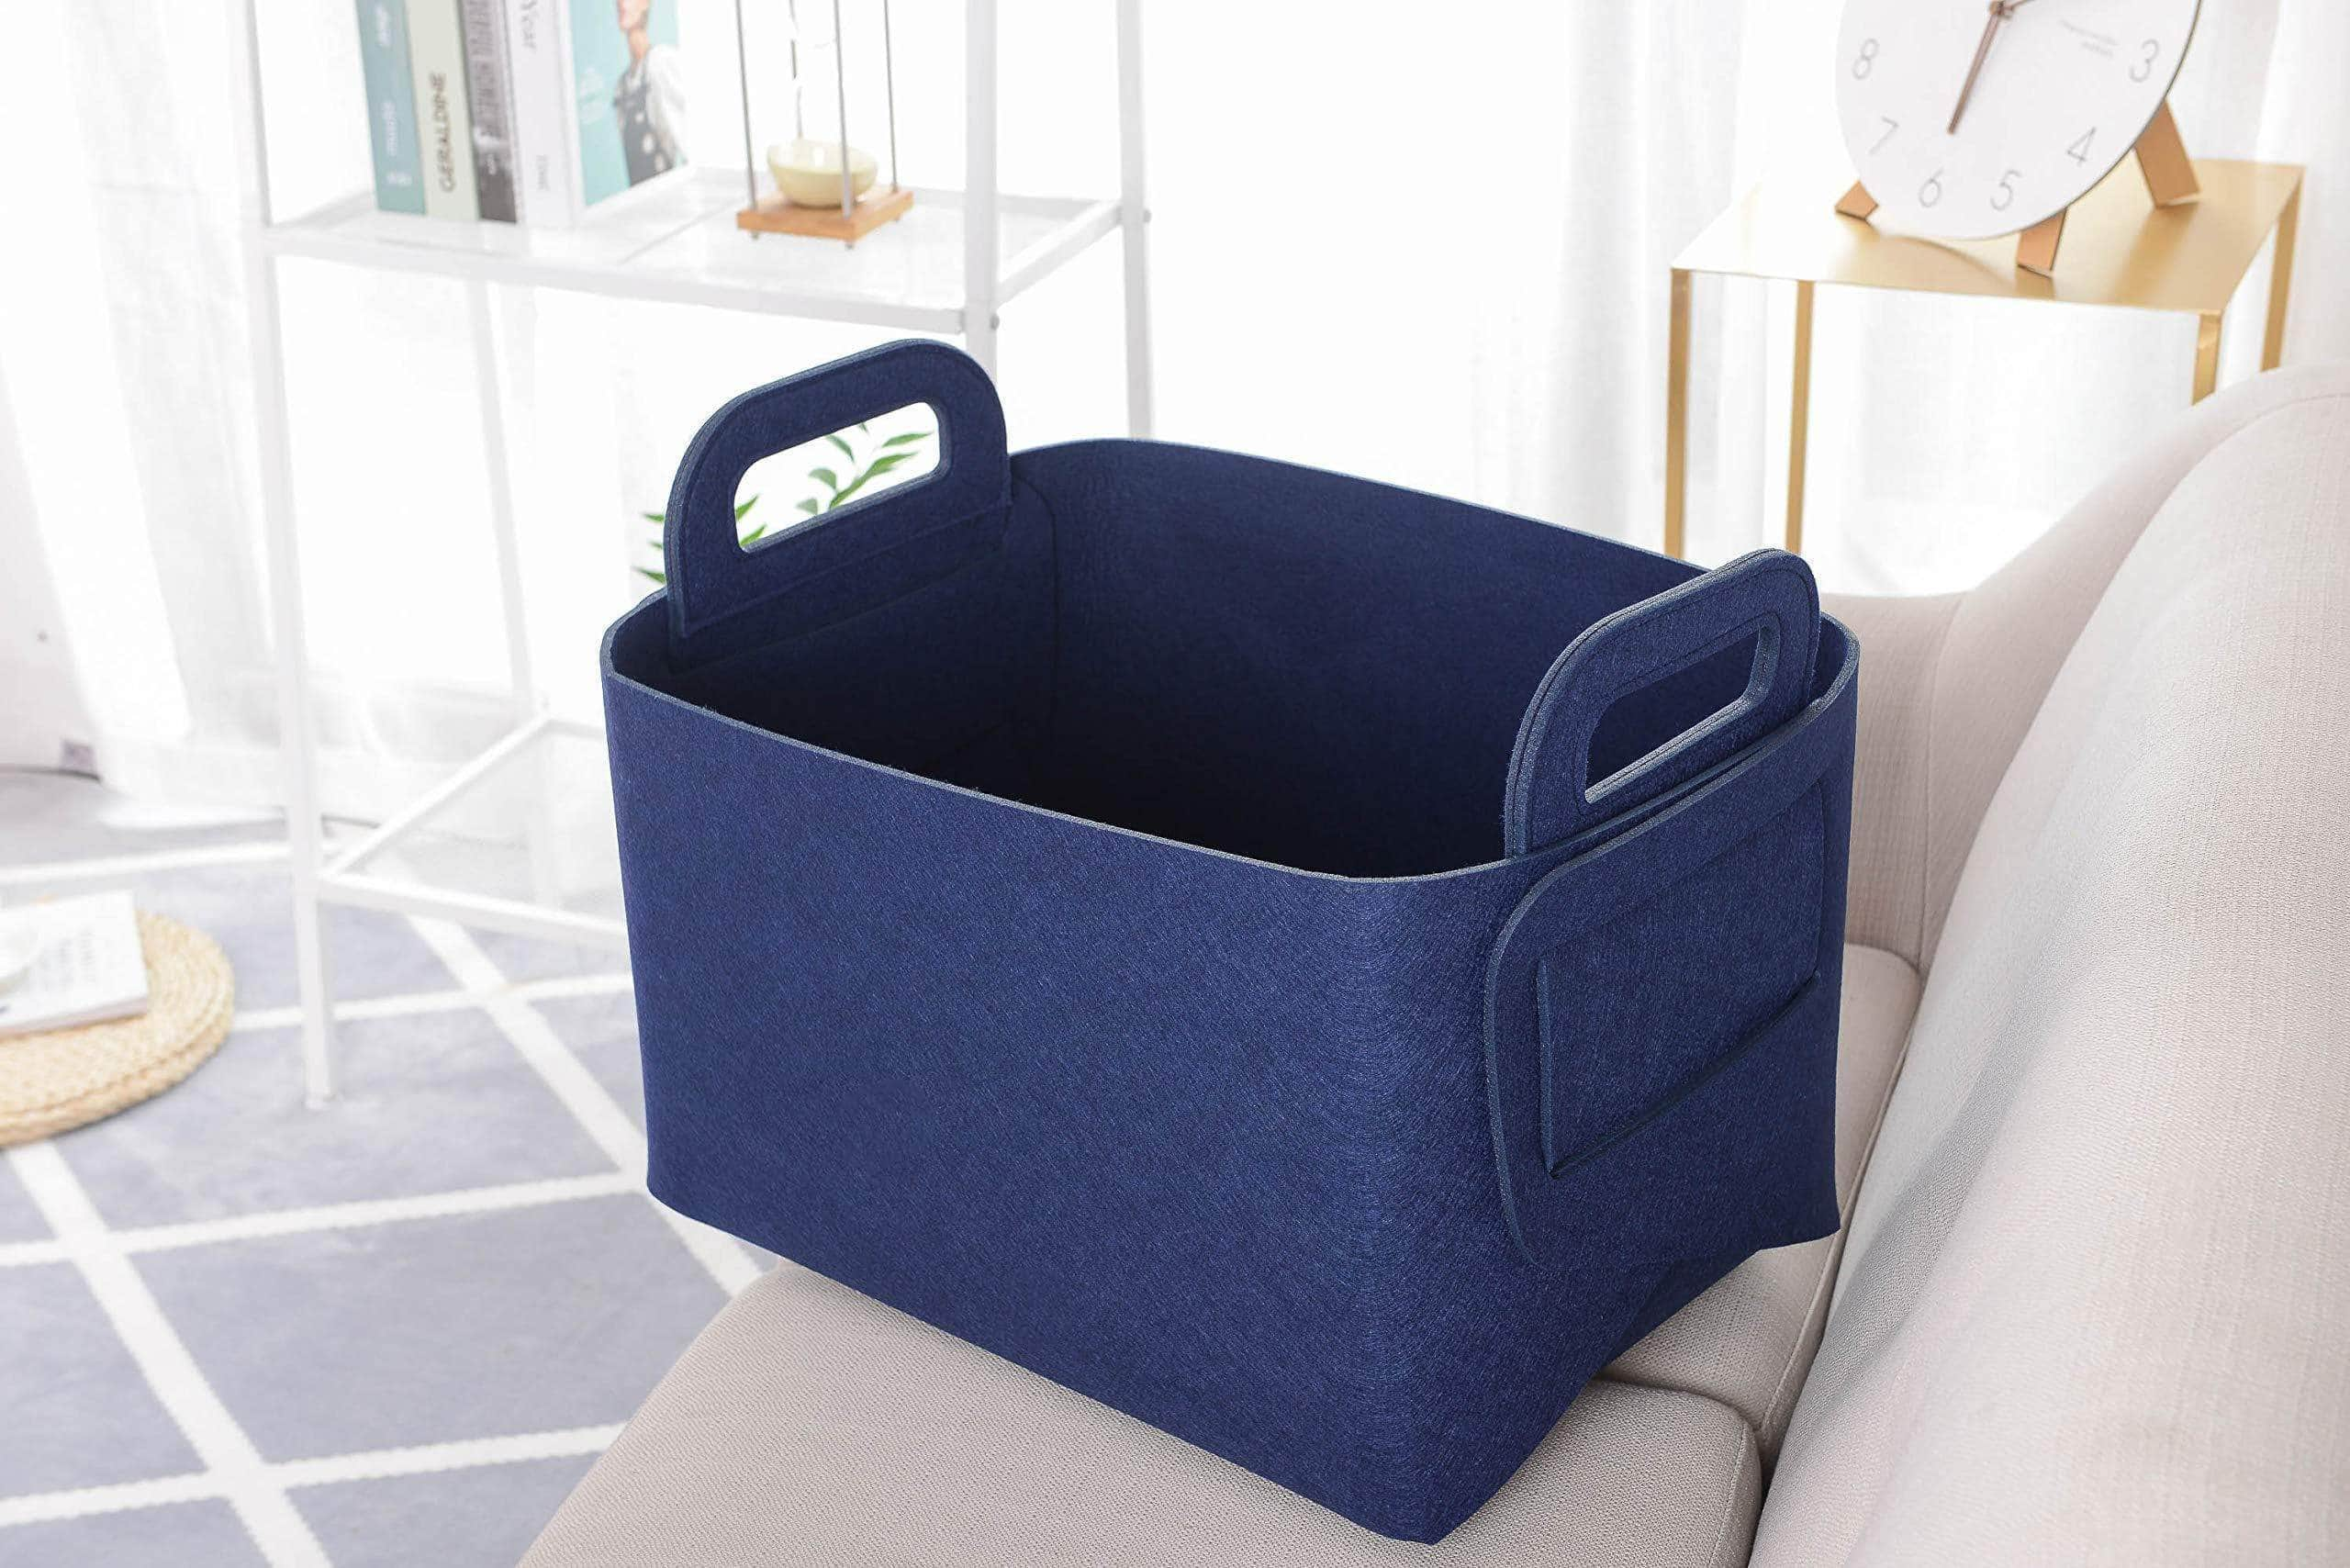 Related storage basket felt storage bin collapsible convenient box organizer with carry handles for office bedroom closet babies nursery toys dvd laundry organizing